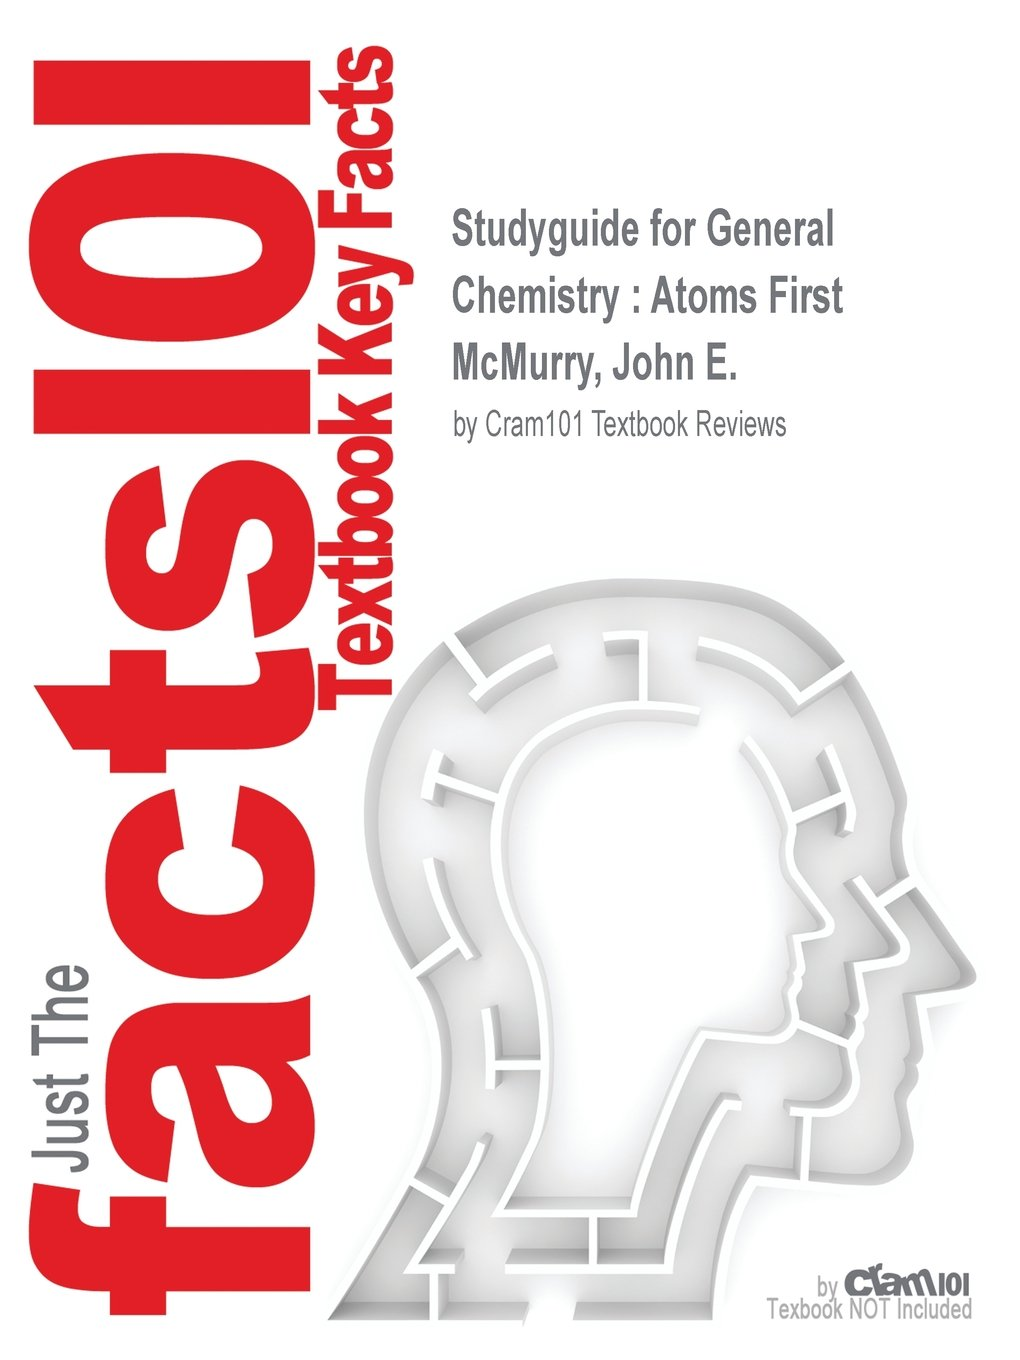 Download Studyguide for General Chemistry: Atoms First by McMurry, John E., ISBN 9780321813190 ebook